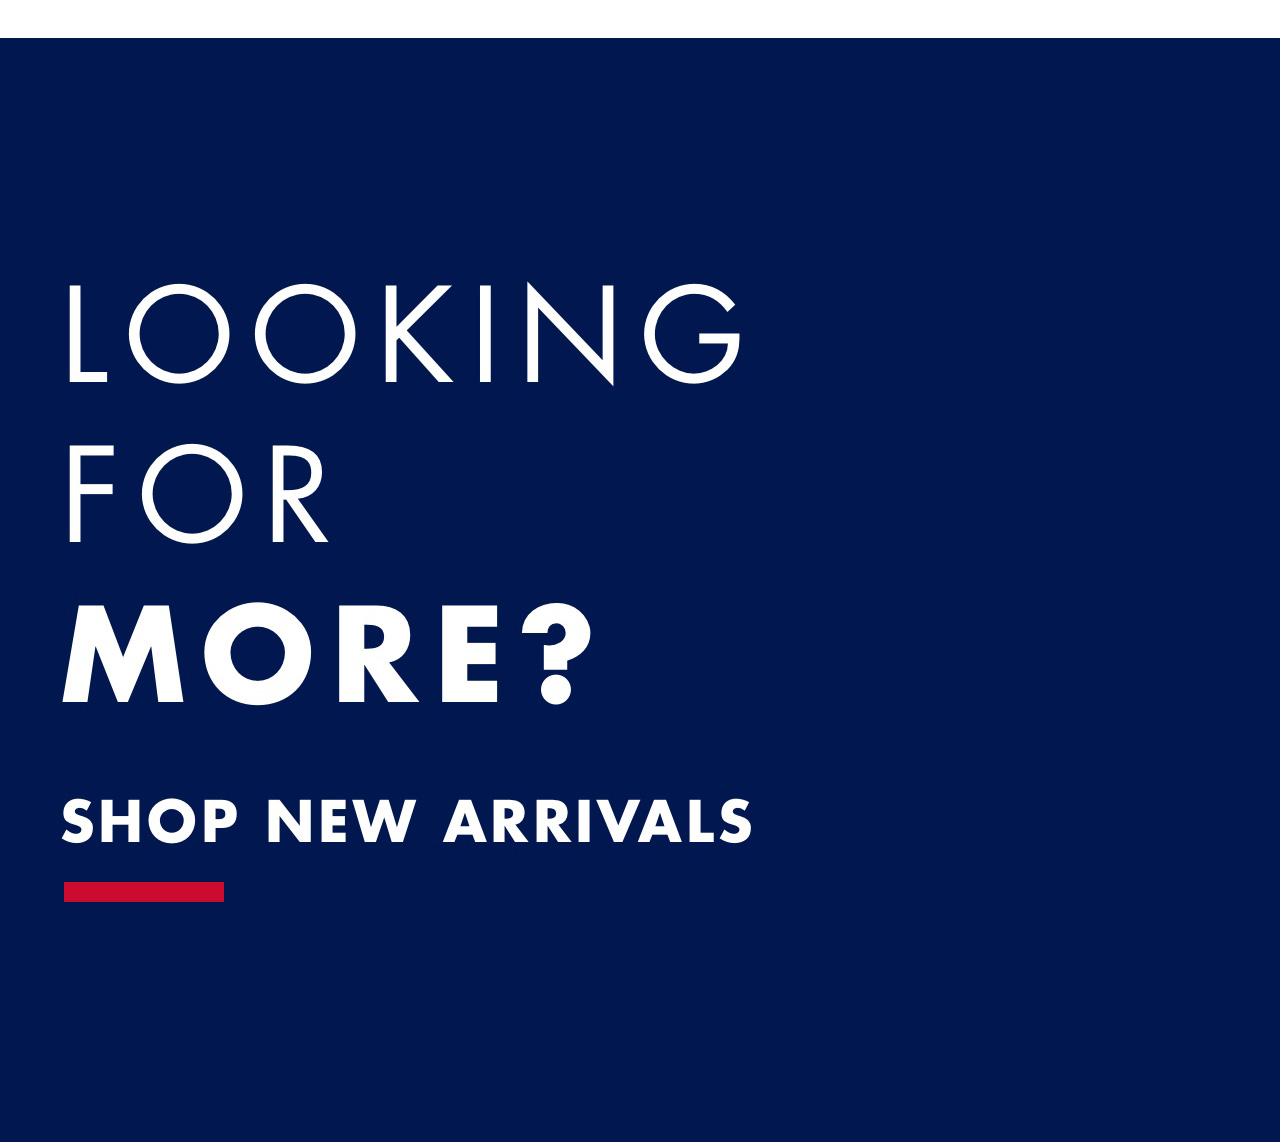 LOOKING FOR MORE? - SHOP NEW ARRIVALS